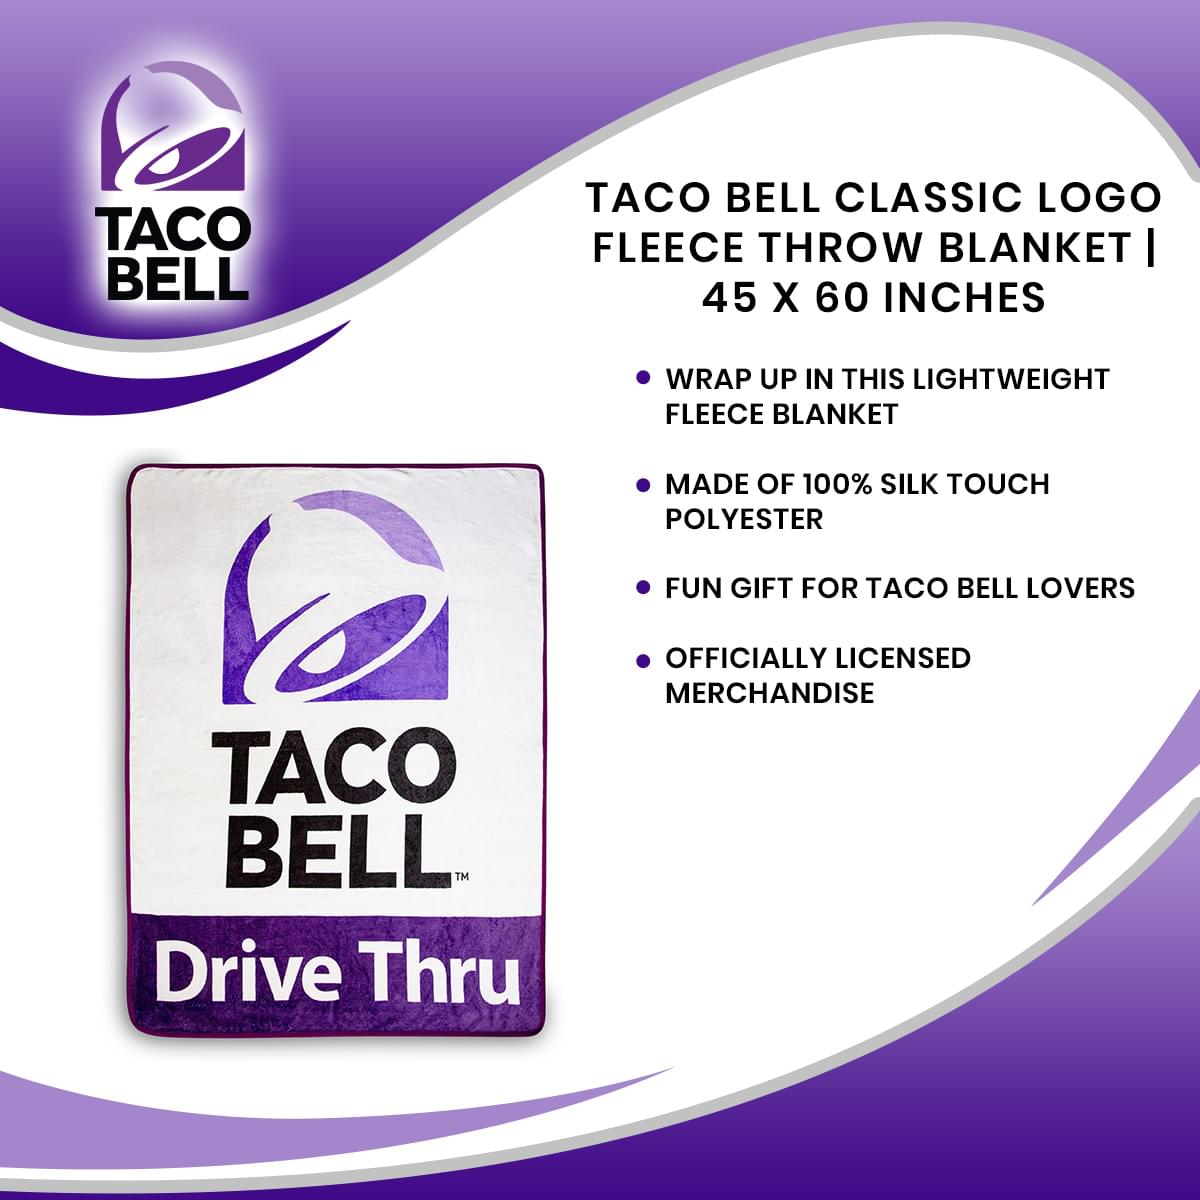 Taco Bell Classic Logo Fleece Throw Blanket | 45 x 60 Inches